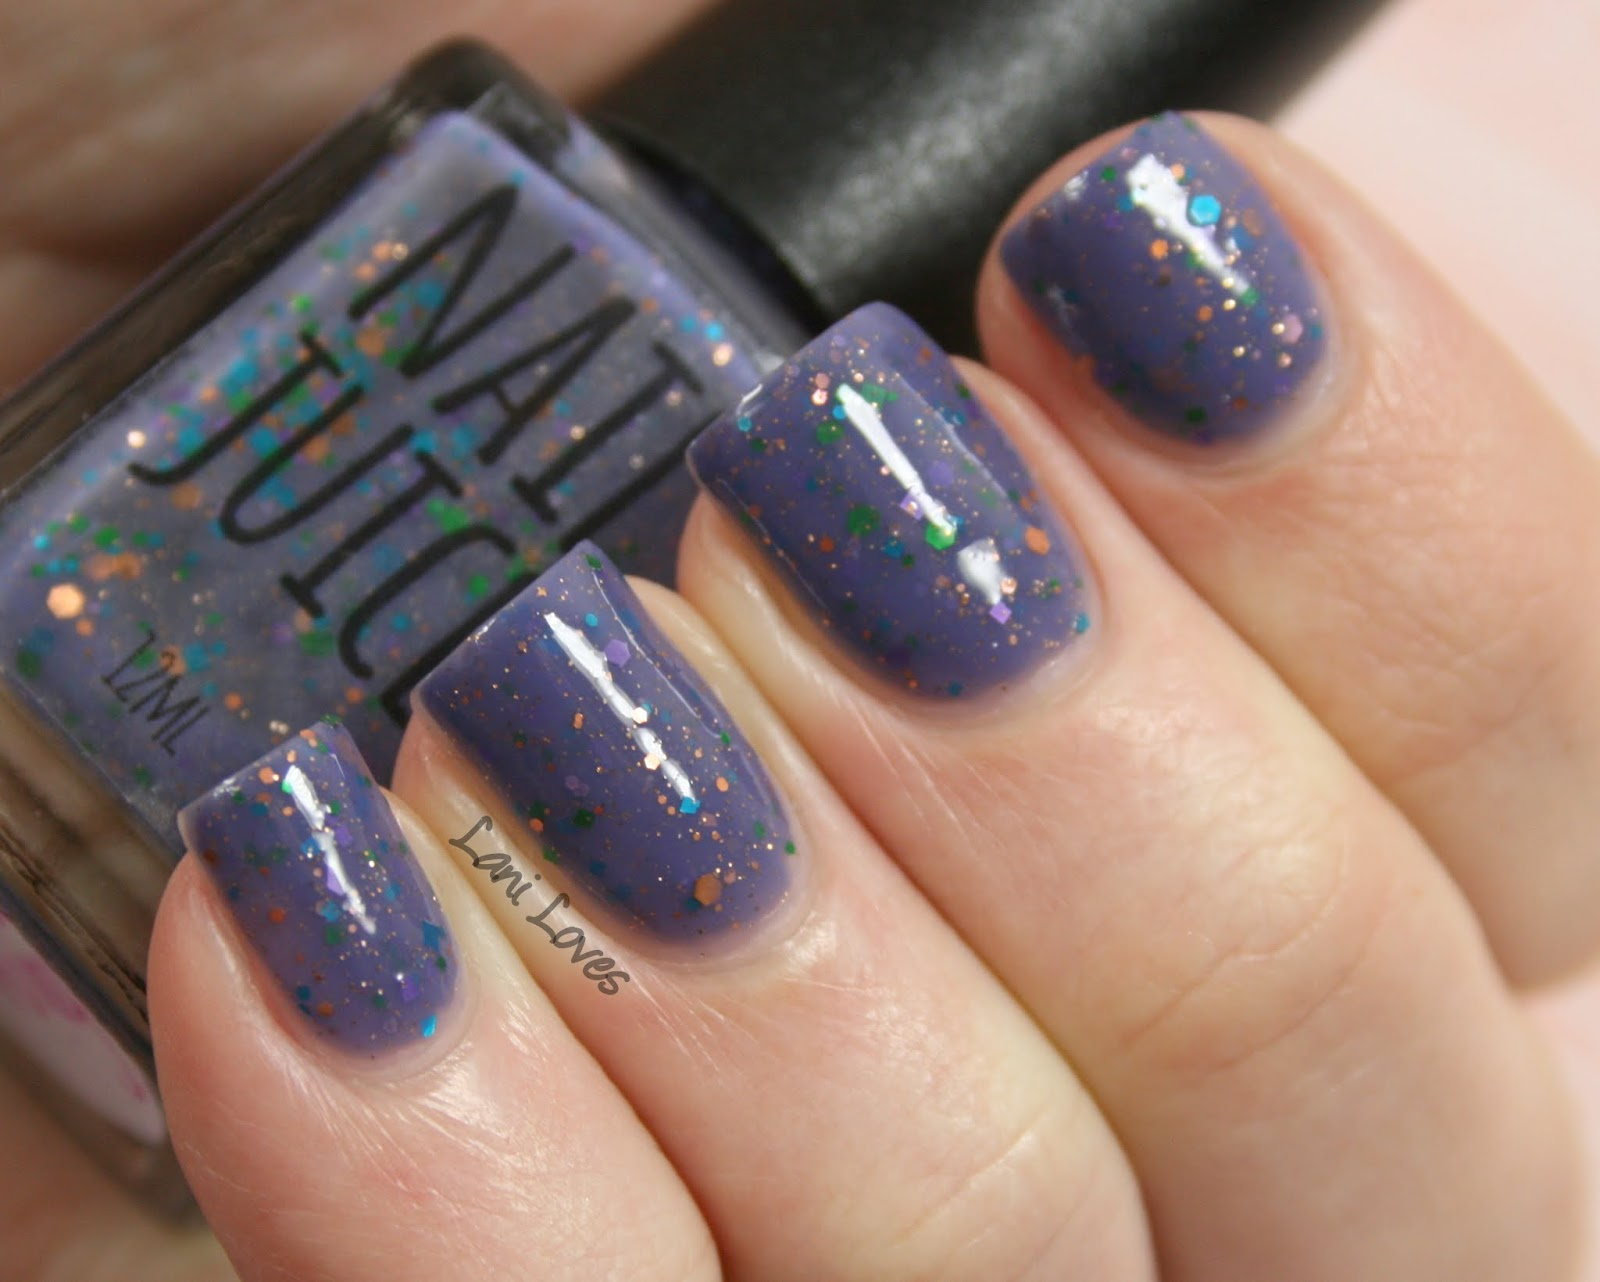 Star dust nail lacquer guerlain 25 - Nail Juice Fairy Dust Nail Polish Swatches Review